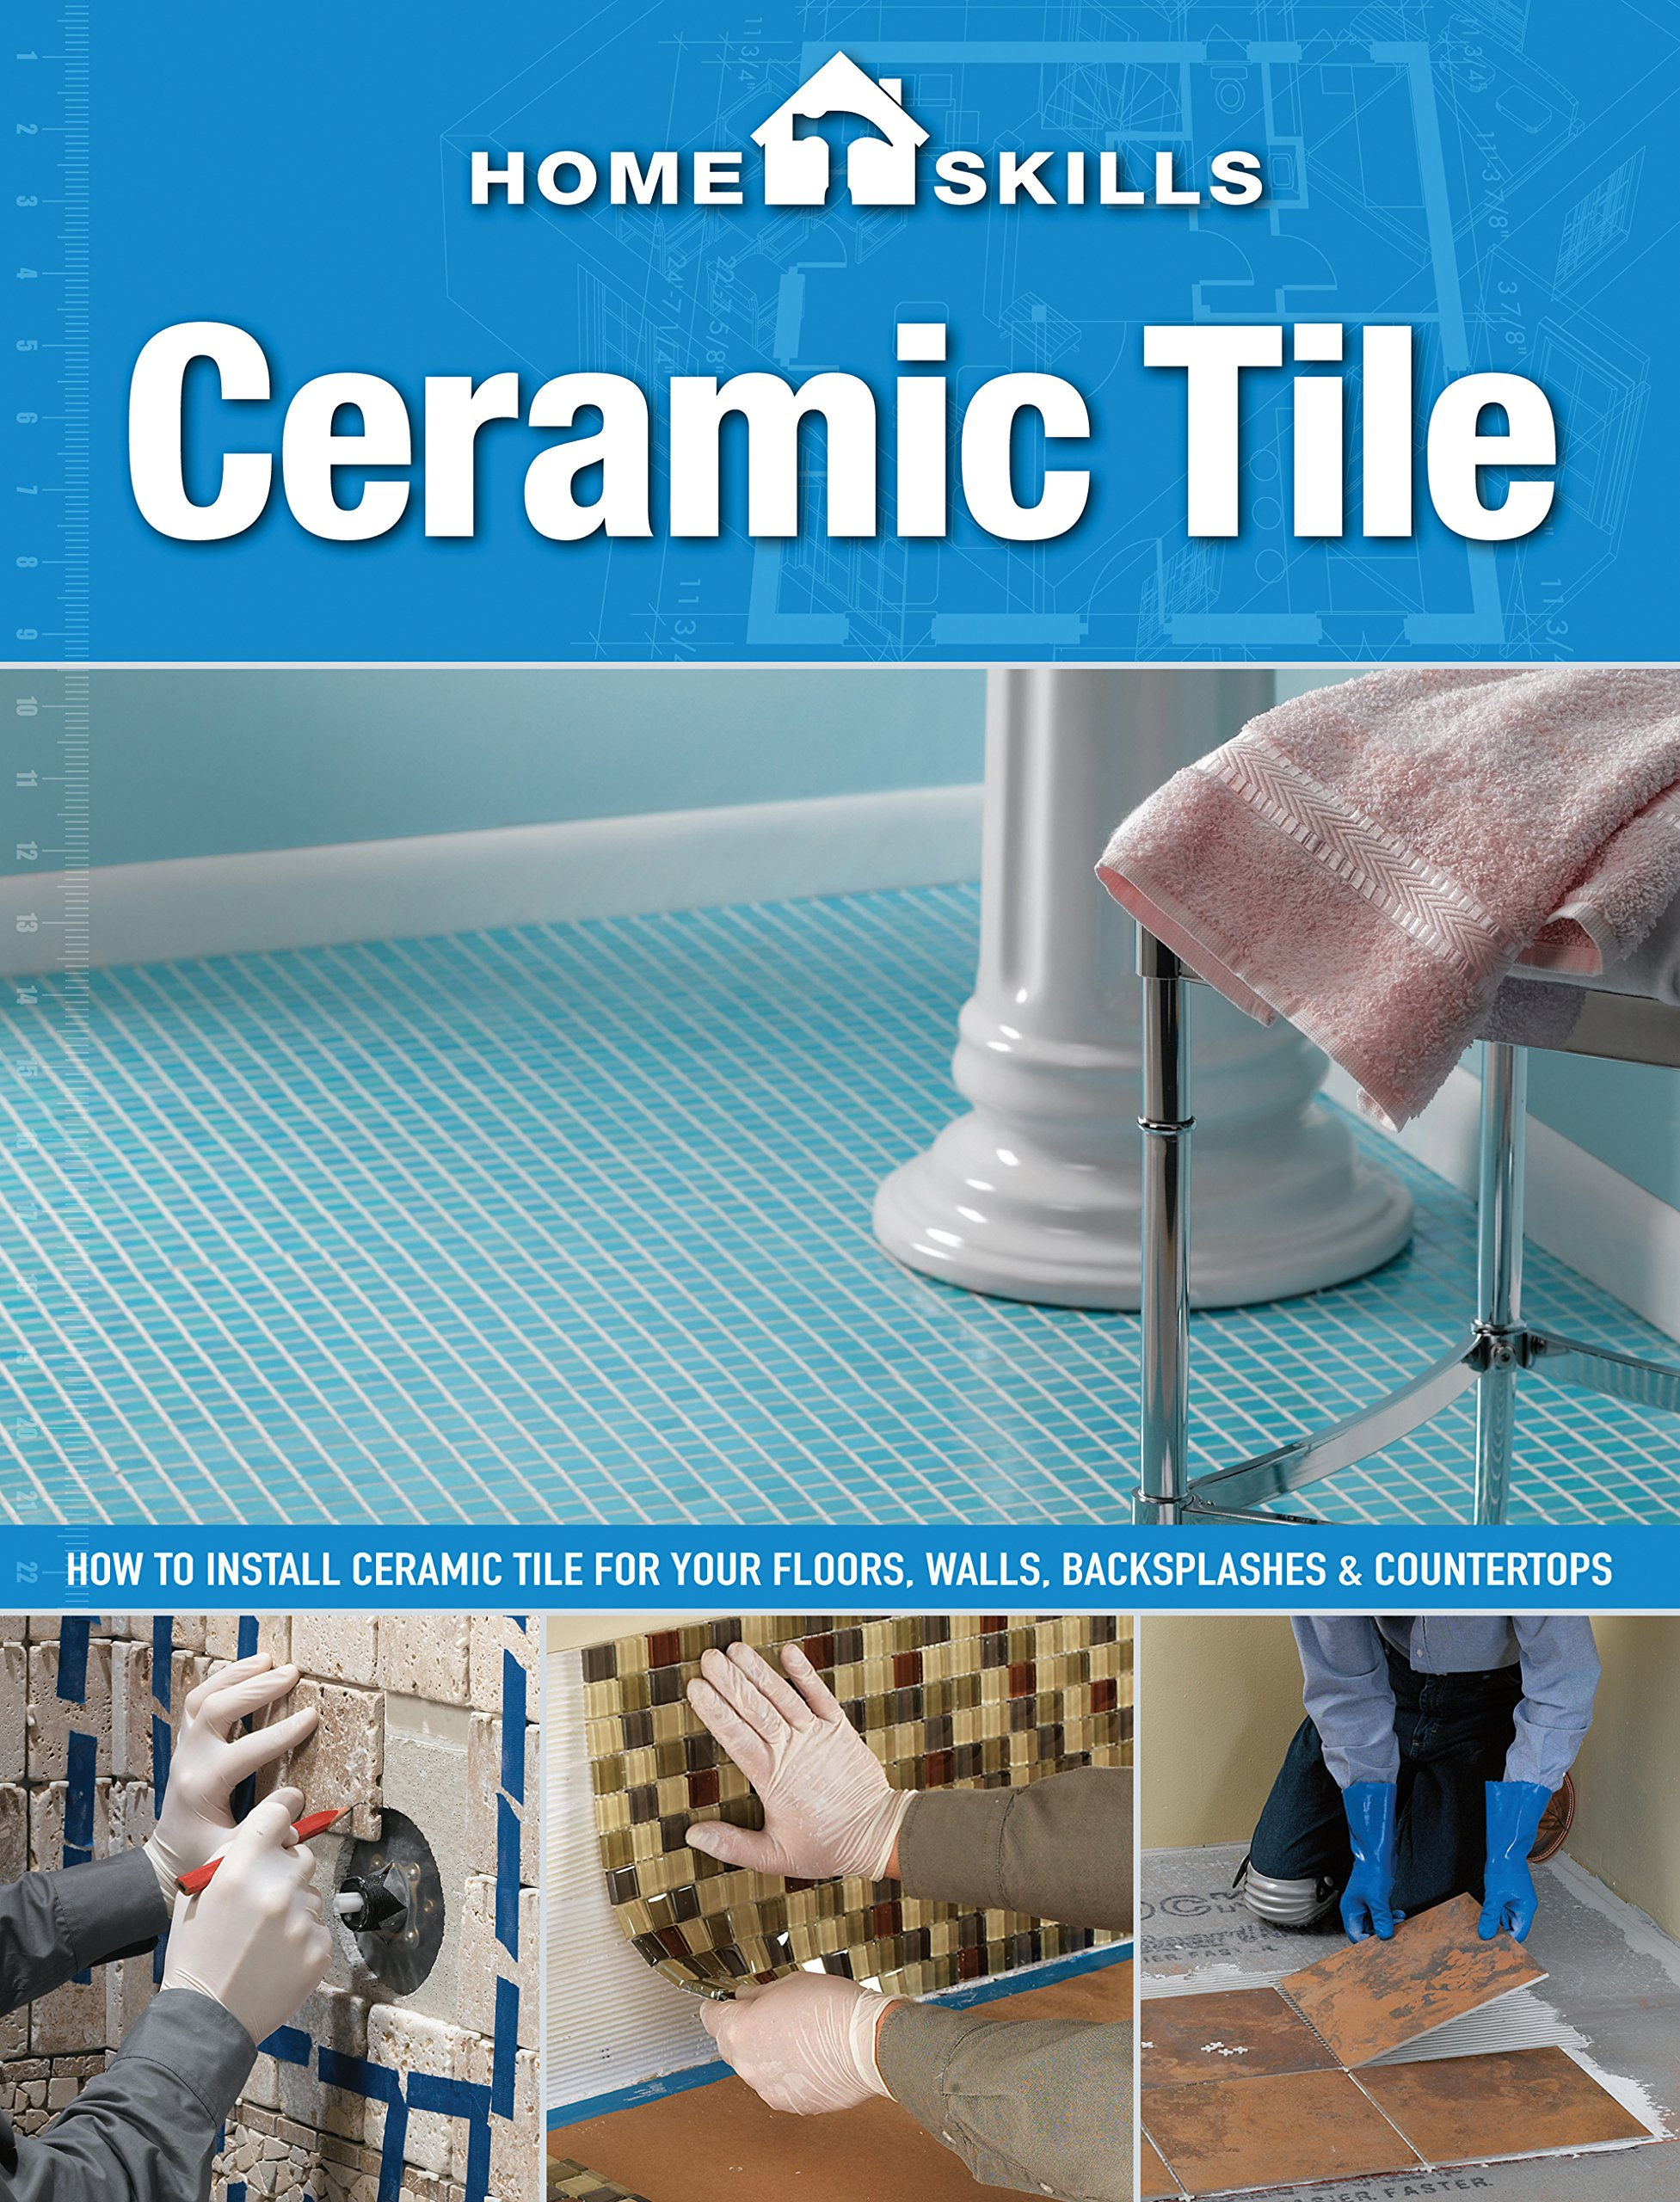 HomeSkills: Ceramic Tile: How to Install Ceramic Tile for Your Floors, Walls, Backsplashes & Countertops by Brand: Cool Springs Press (Image #2)